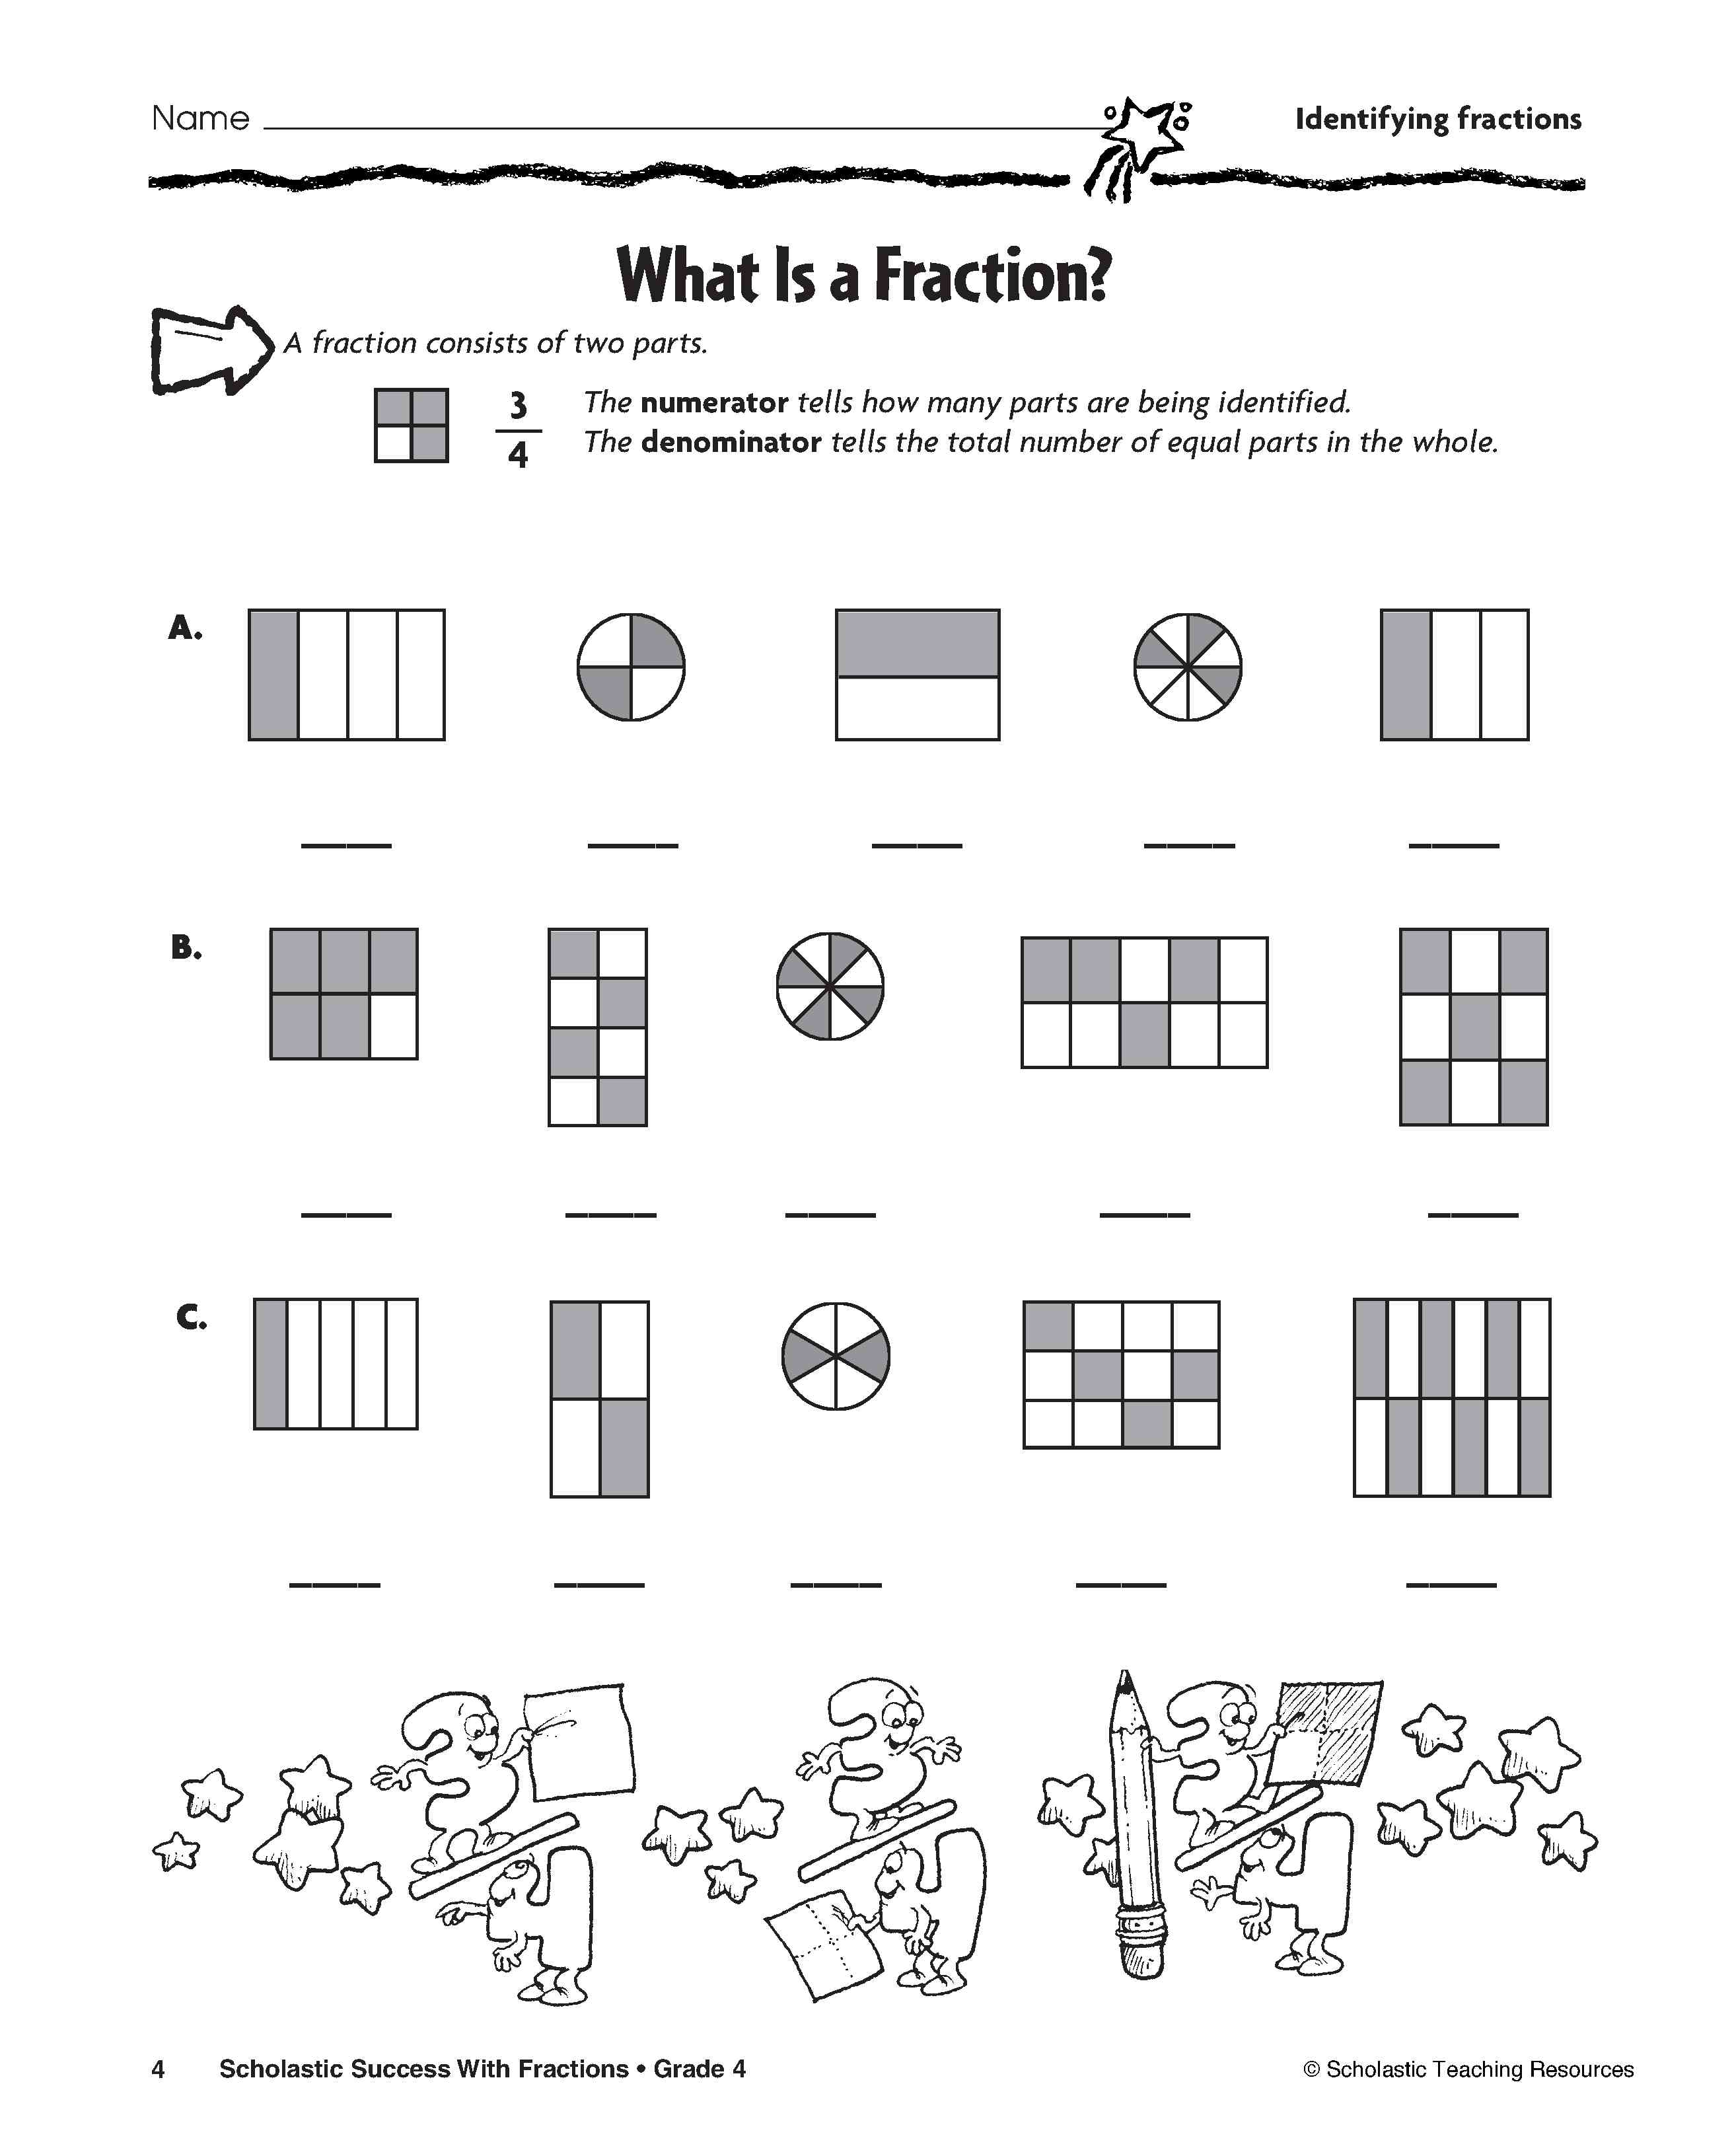 Critical Thinking Activities Printables - Critical Thinking Worksheets - Free Printable Critical Thinking Puzzles